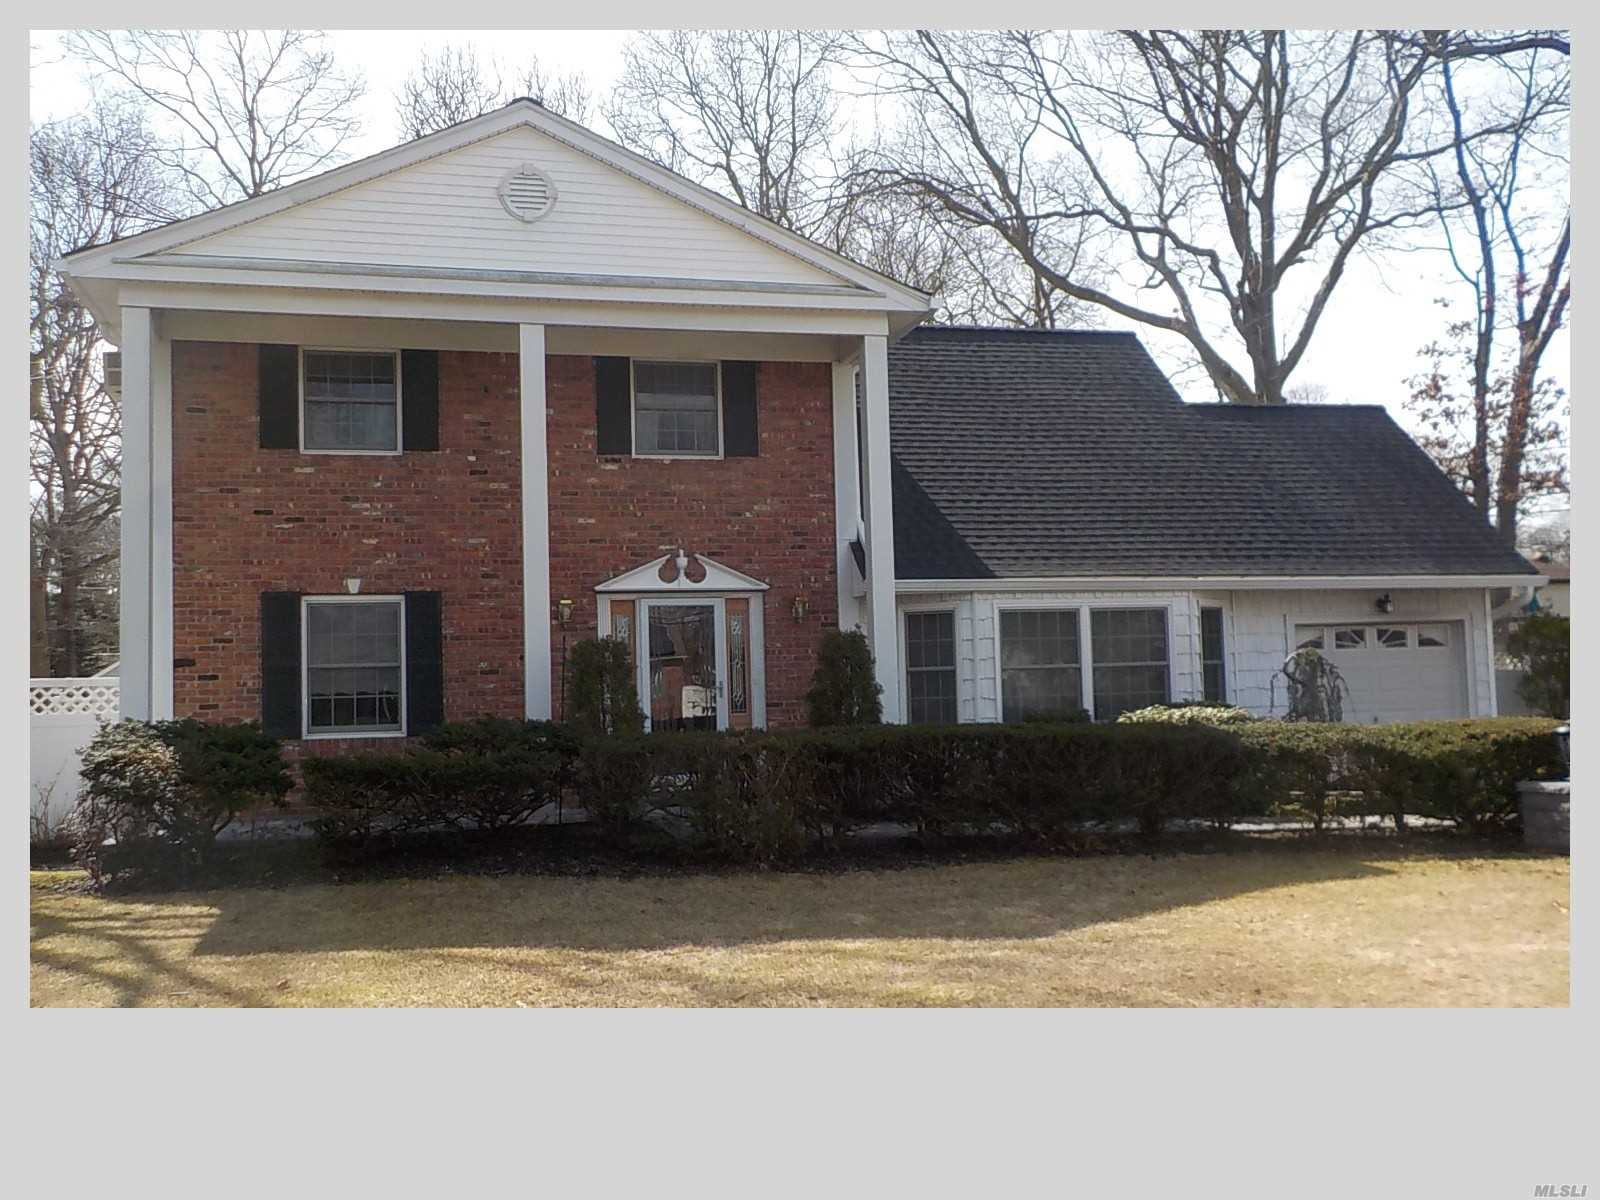 Move Right In To This Beautiful Blair Colonial!! Numerous recent updates, Polished Hardwood Floors On 1st Level; Eik W/Silestone Counters &SS Appliances; Roof -2 Yrs; Anderson Renewal In Front /Replacements In Rear; Upstairs Bath W/Whirlpool Tub; Washer /Dryer On Main Level; King Sized Master Bedroom Suite W/Fbath; Cozy Family Room W/Fireplace; Slider To Yard W/Paver Patio; Vinyl Fenced Yard; 150 Amp Electric; 275 g oil tank in basement